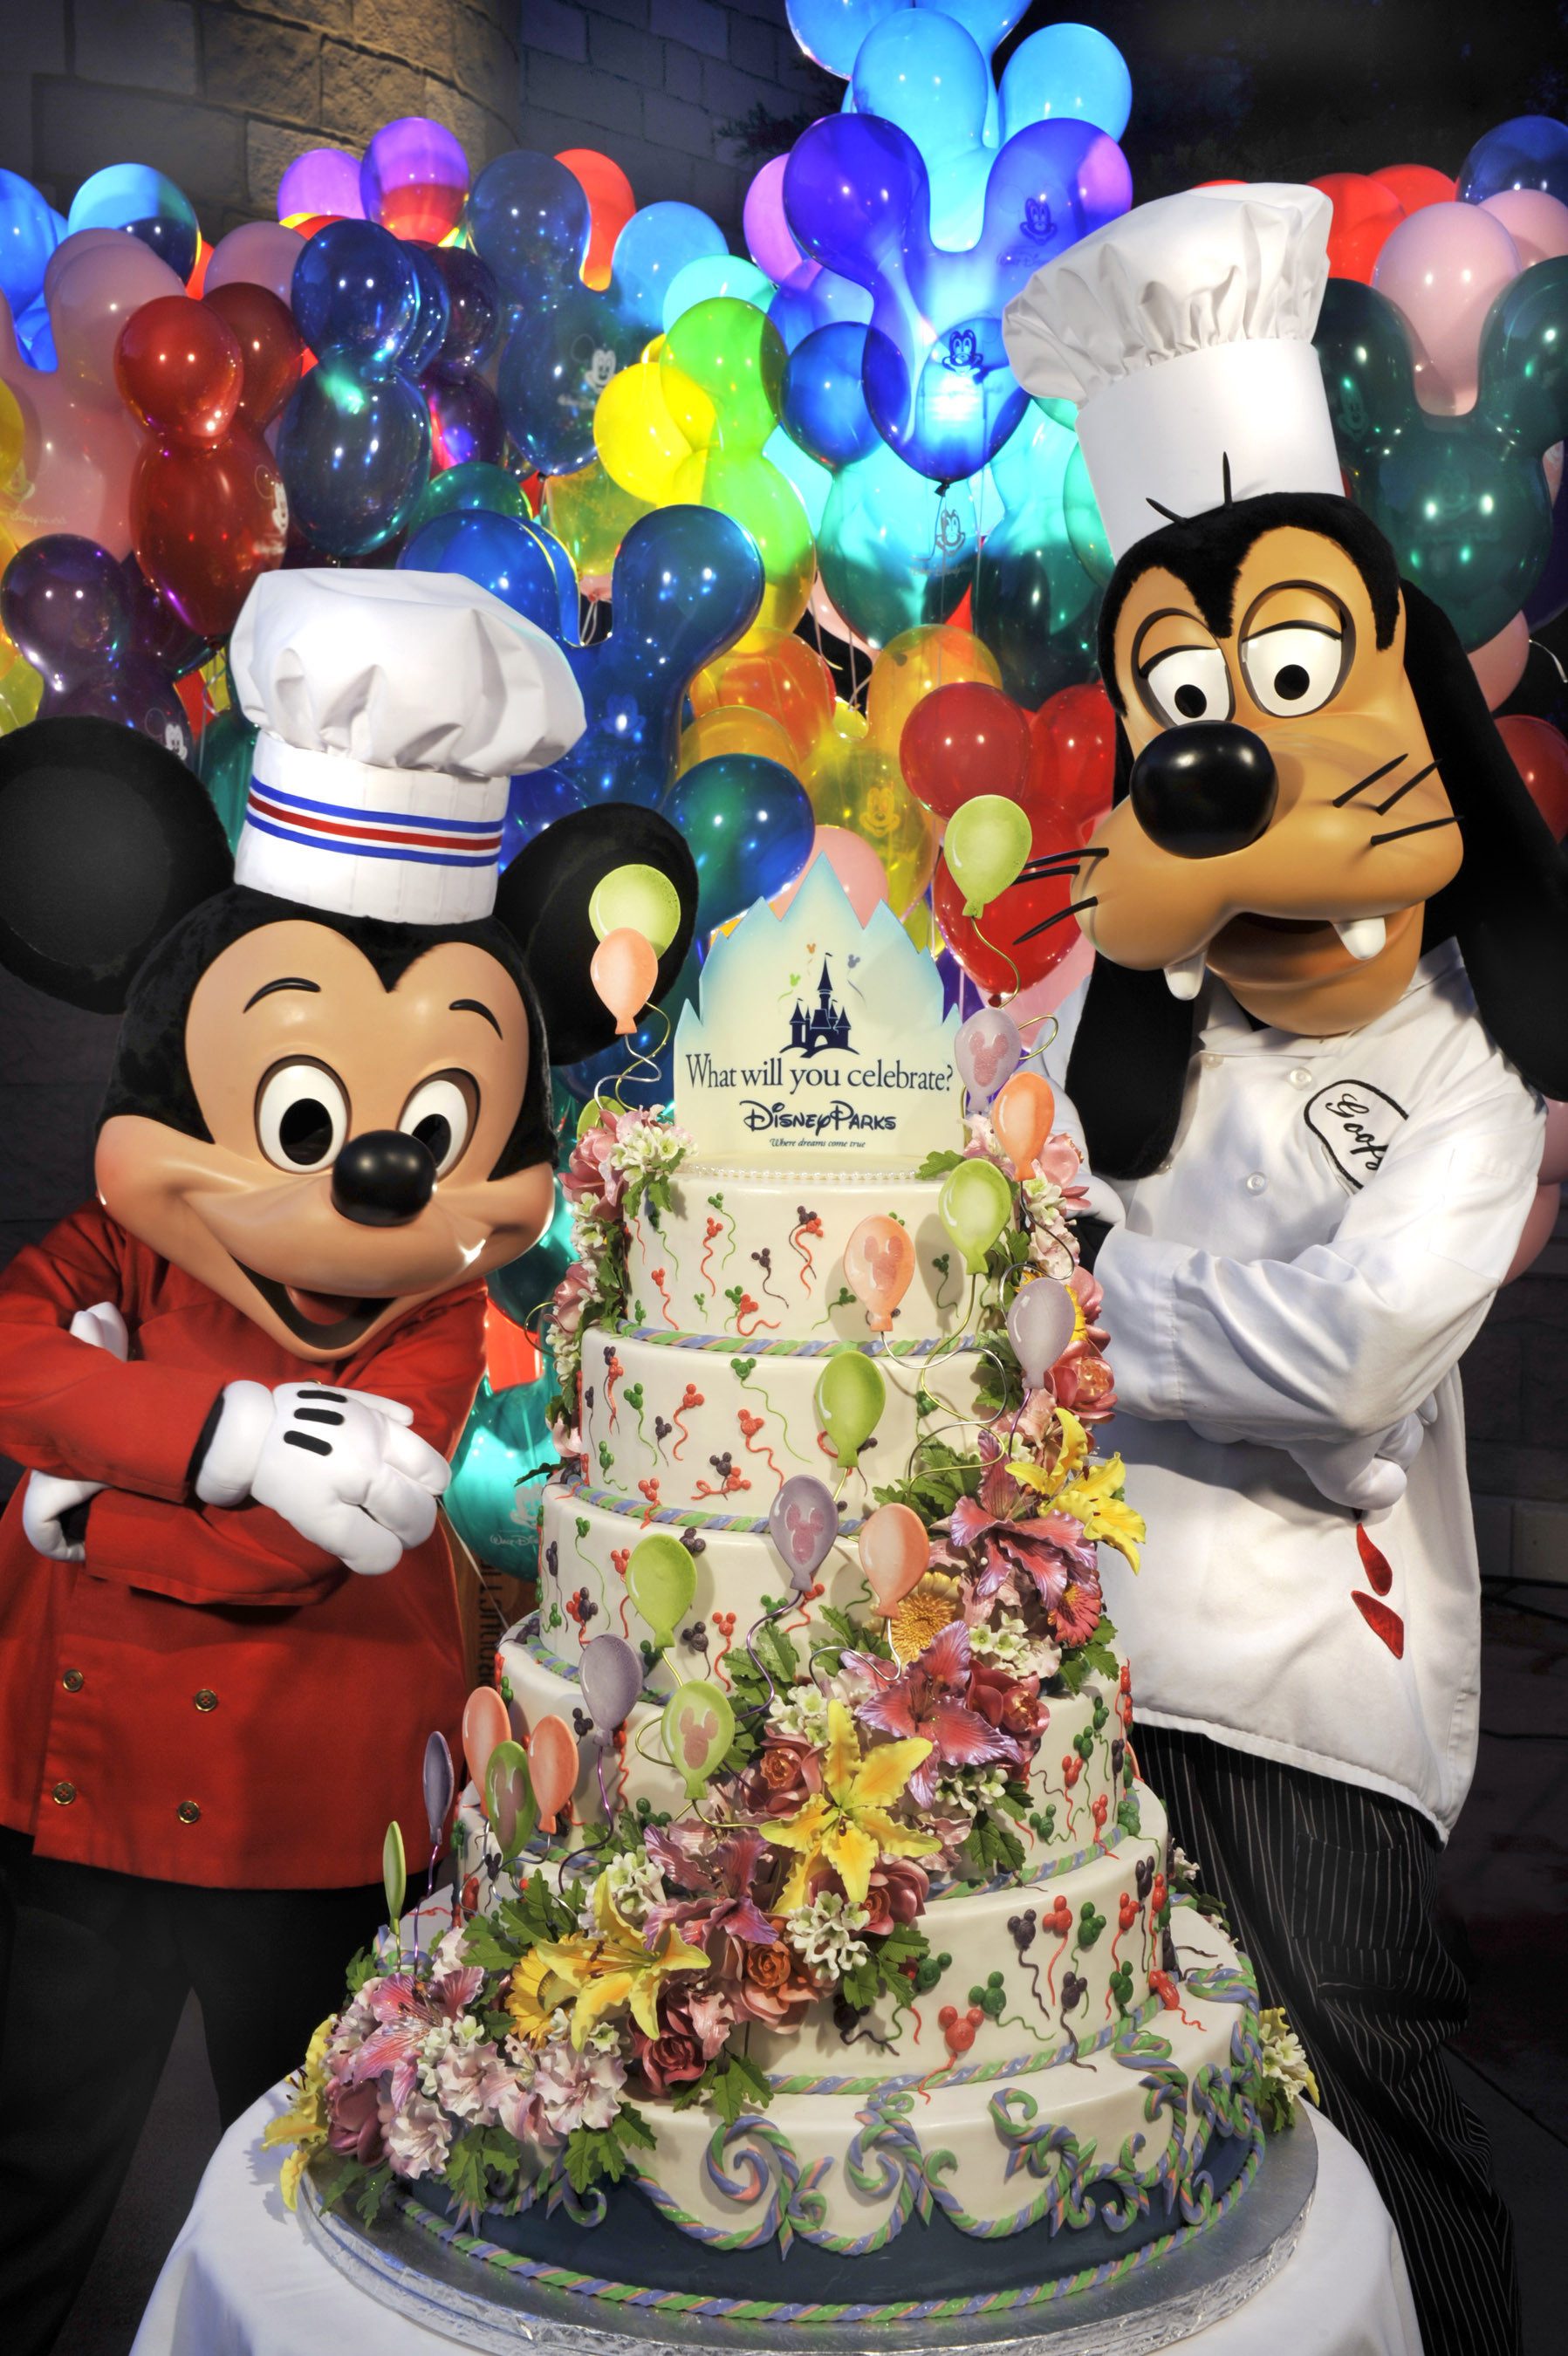 Best ideas about Disney Birthday Cake . Save or Pin Happy birthday Ollie Now.